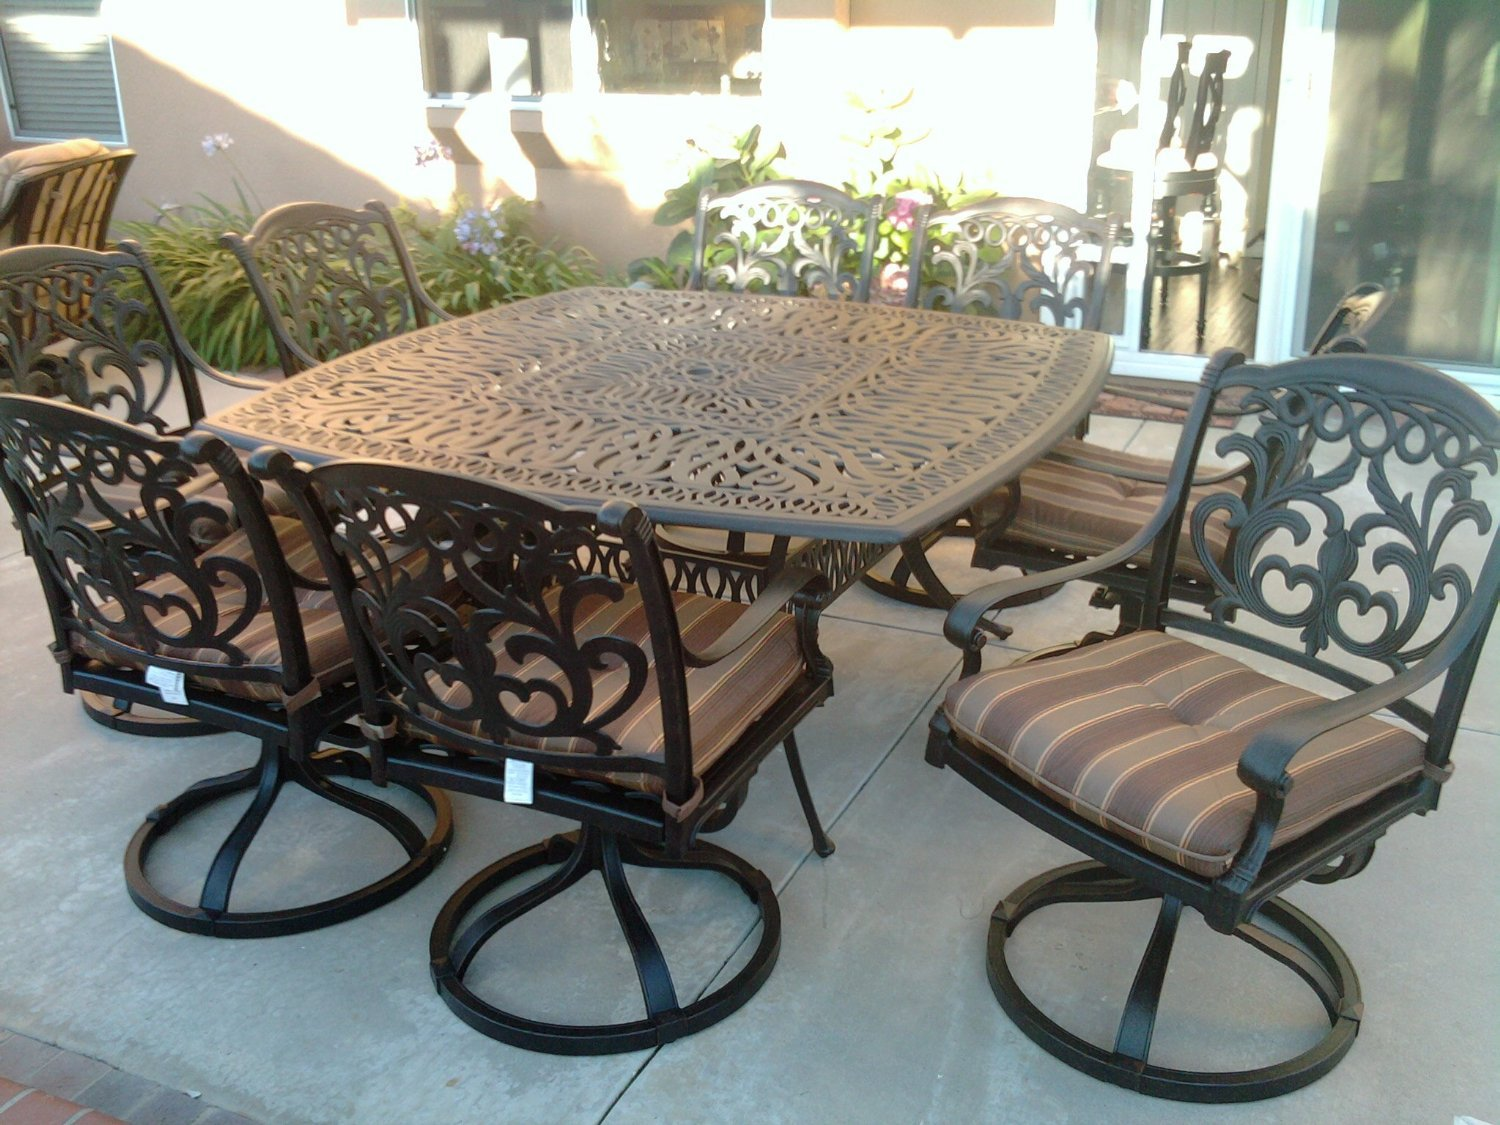 "Theworldofpatio Mandalay Cast Aluminum Powder Coated 9pc Outdoor Patio Set with 64""x64"" Square Table - Antique Bronze"